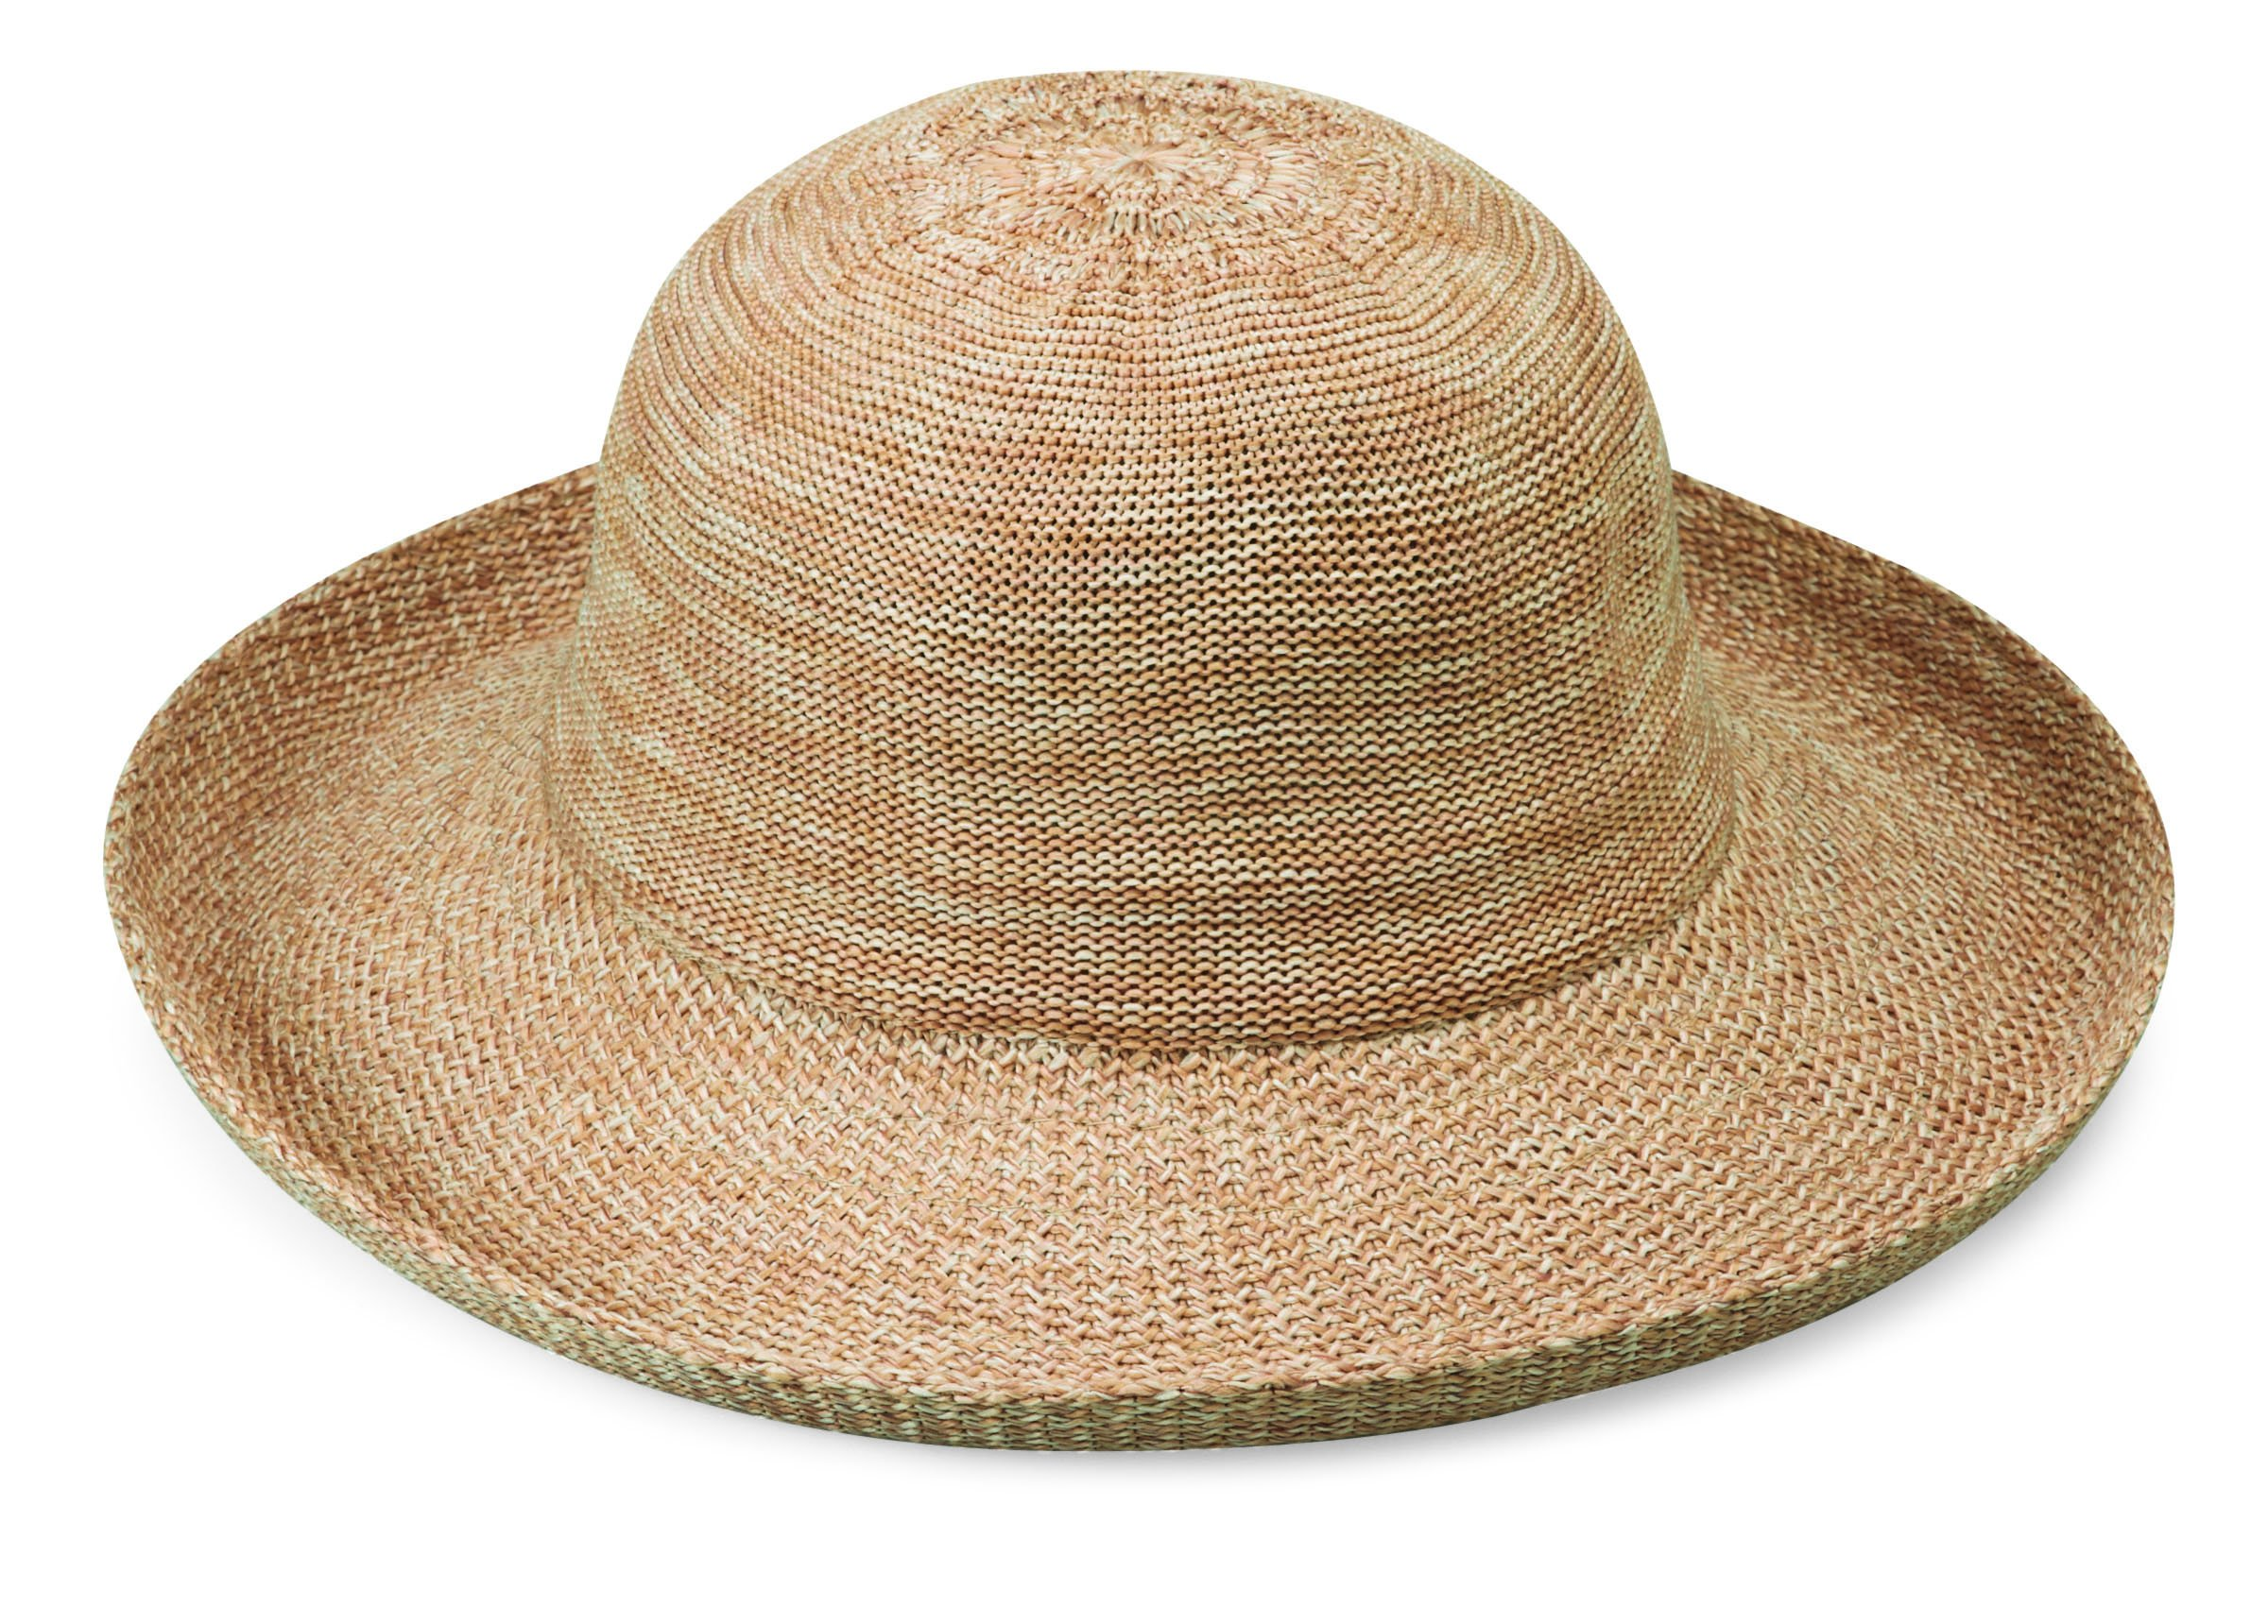 Wallaroo Hat Company Women's Victoria Sun Hat - Mixed Camel - Ultra-Lightweight, Packable, Modern Style, Designed in Australia. by Wallaroo Hat Company